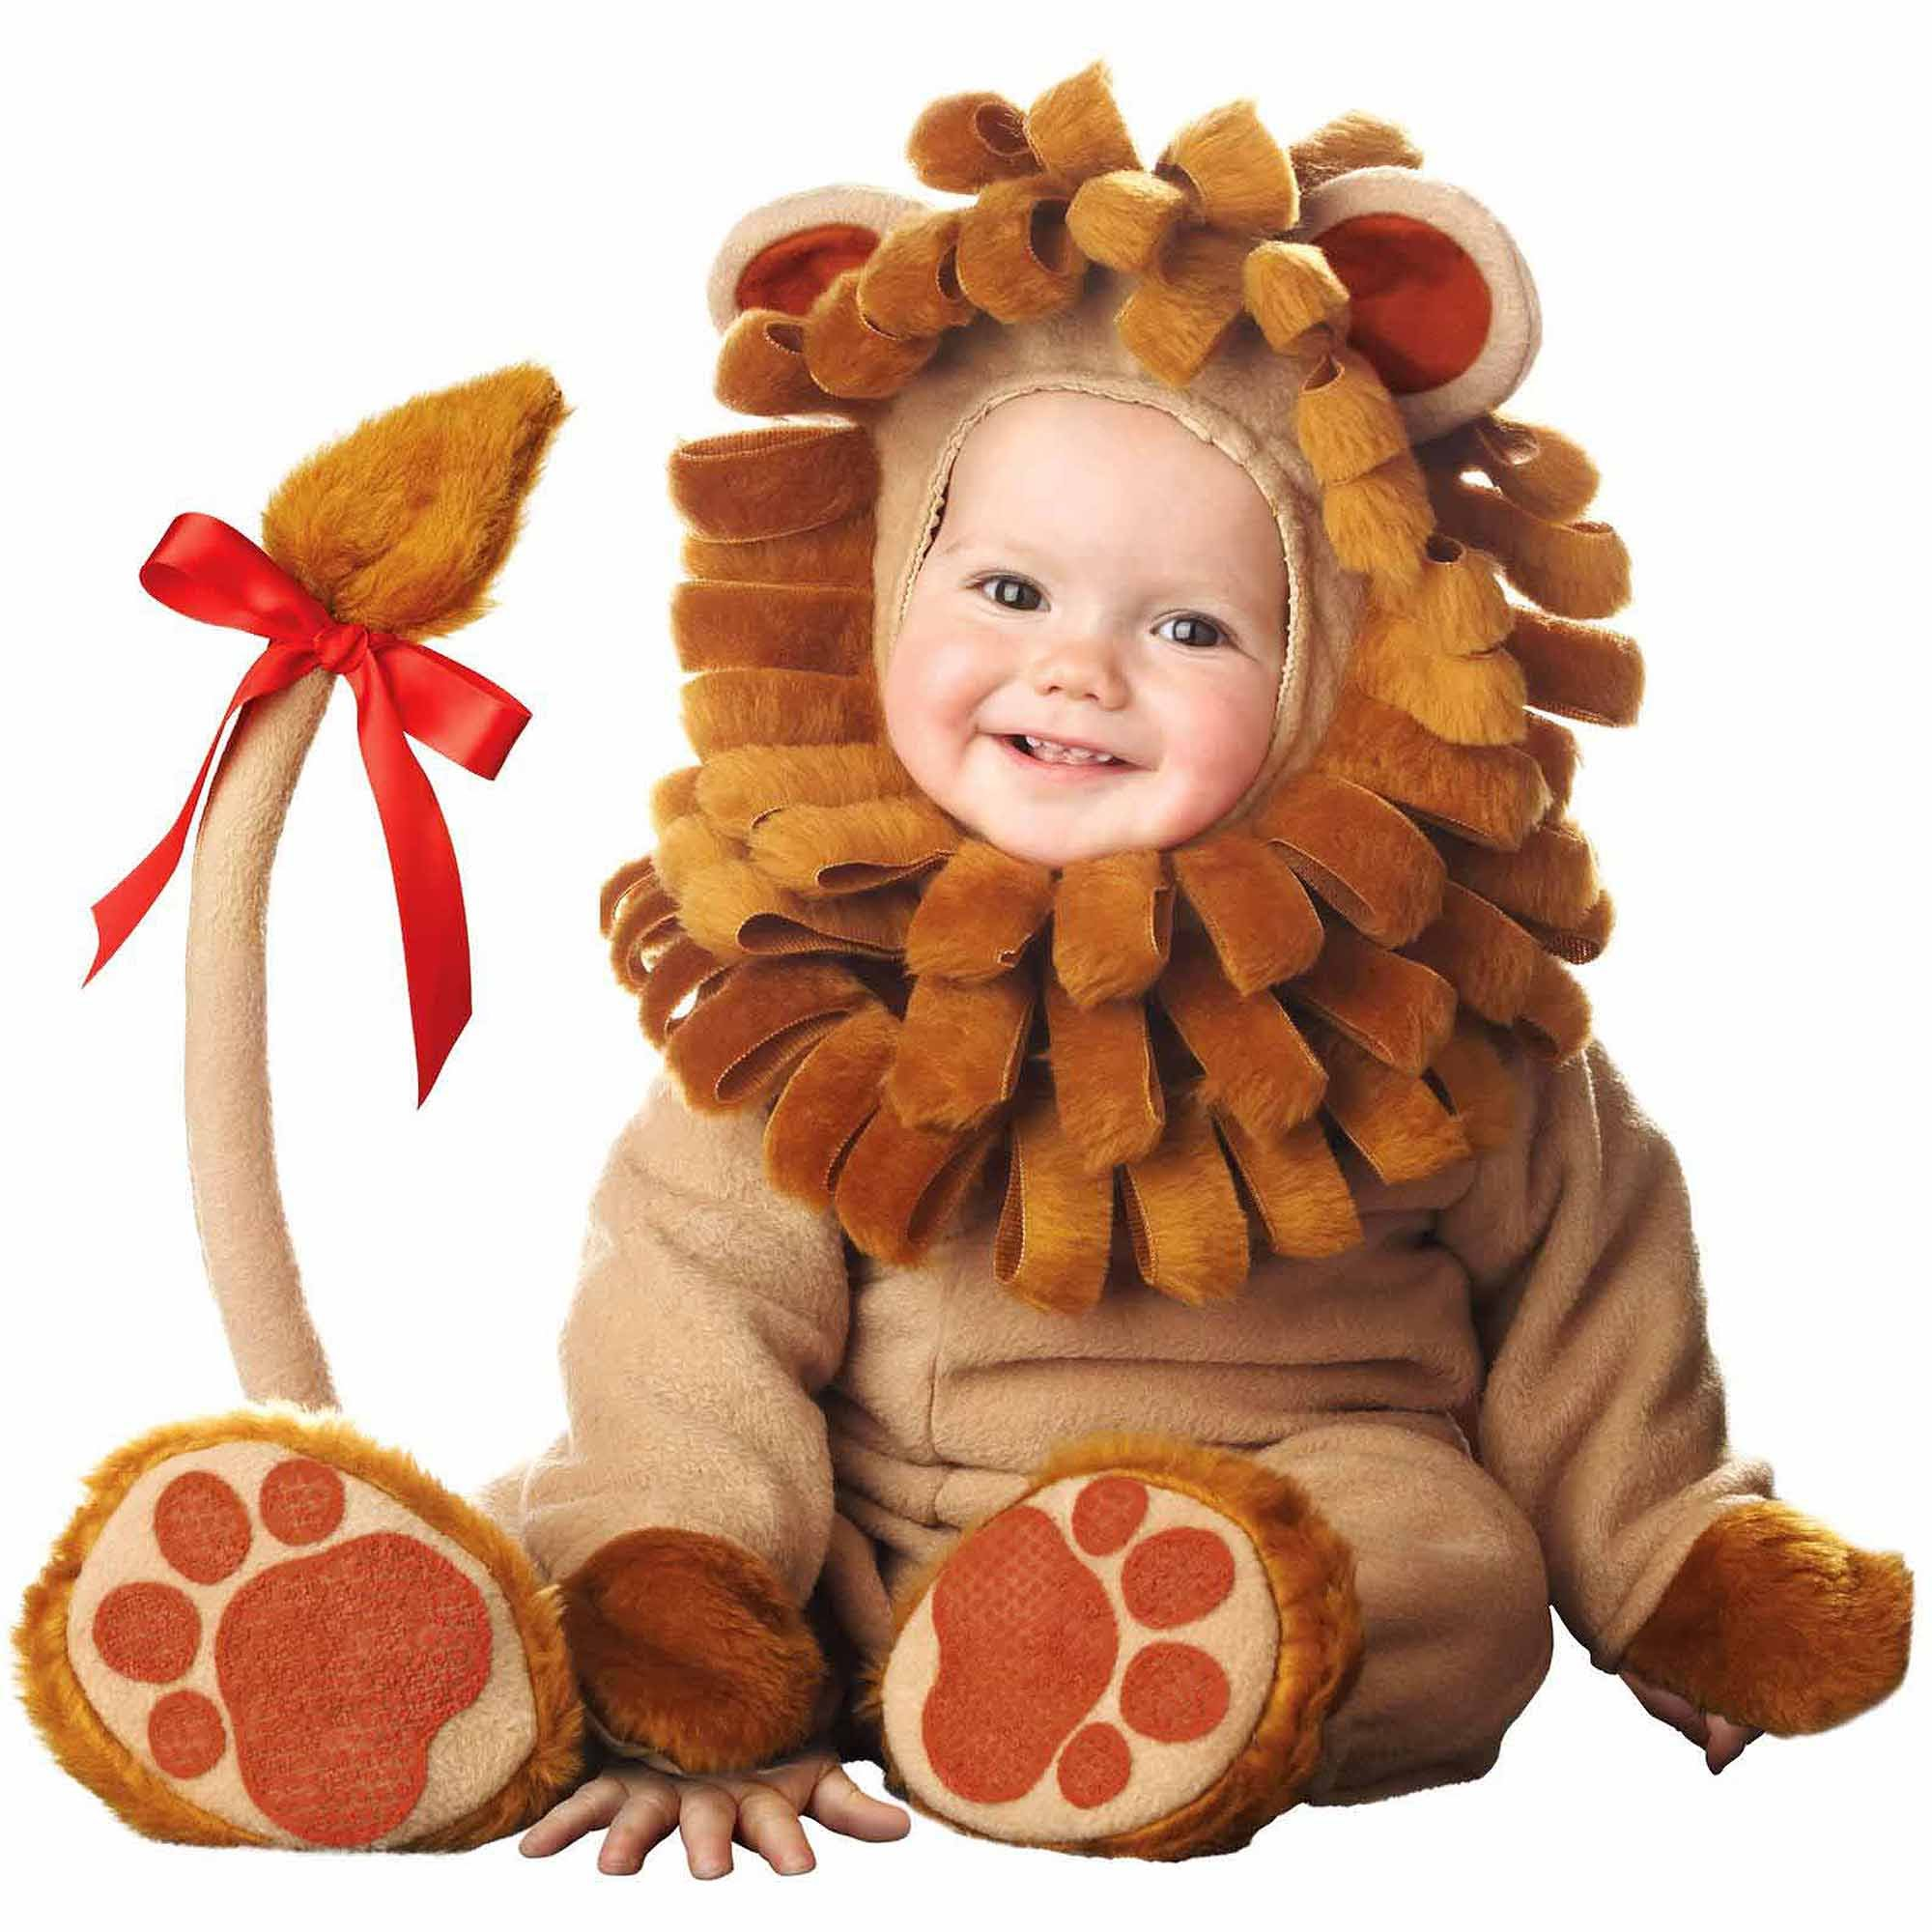 #halloweencostumesfornewborns0 #halloweencostumesforbabies0 #infantcostumes3  sc 1 st  YouTube & Infant Halloween Costumes 0-3 Months - YouTube